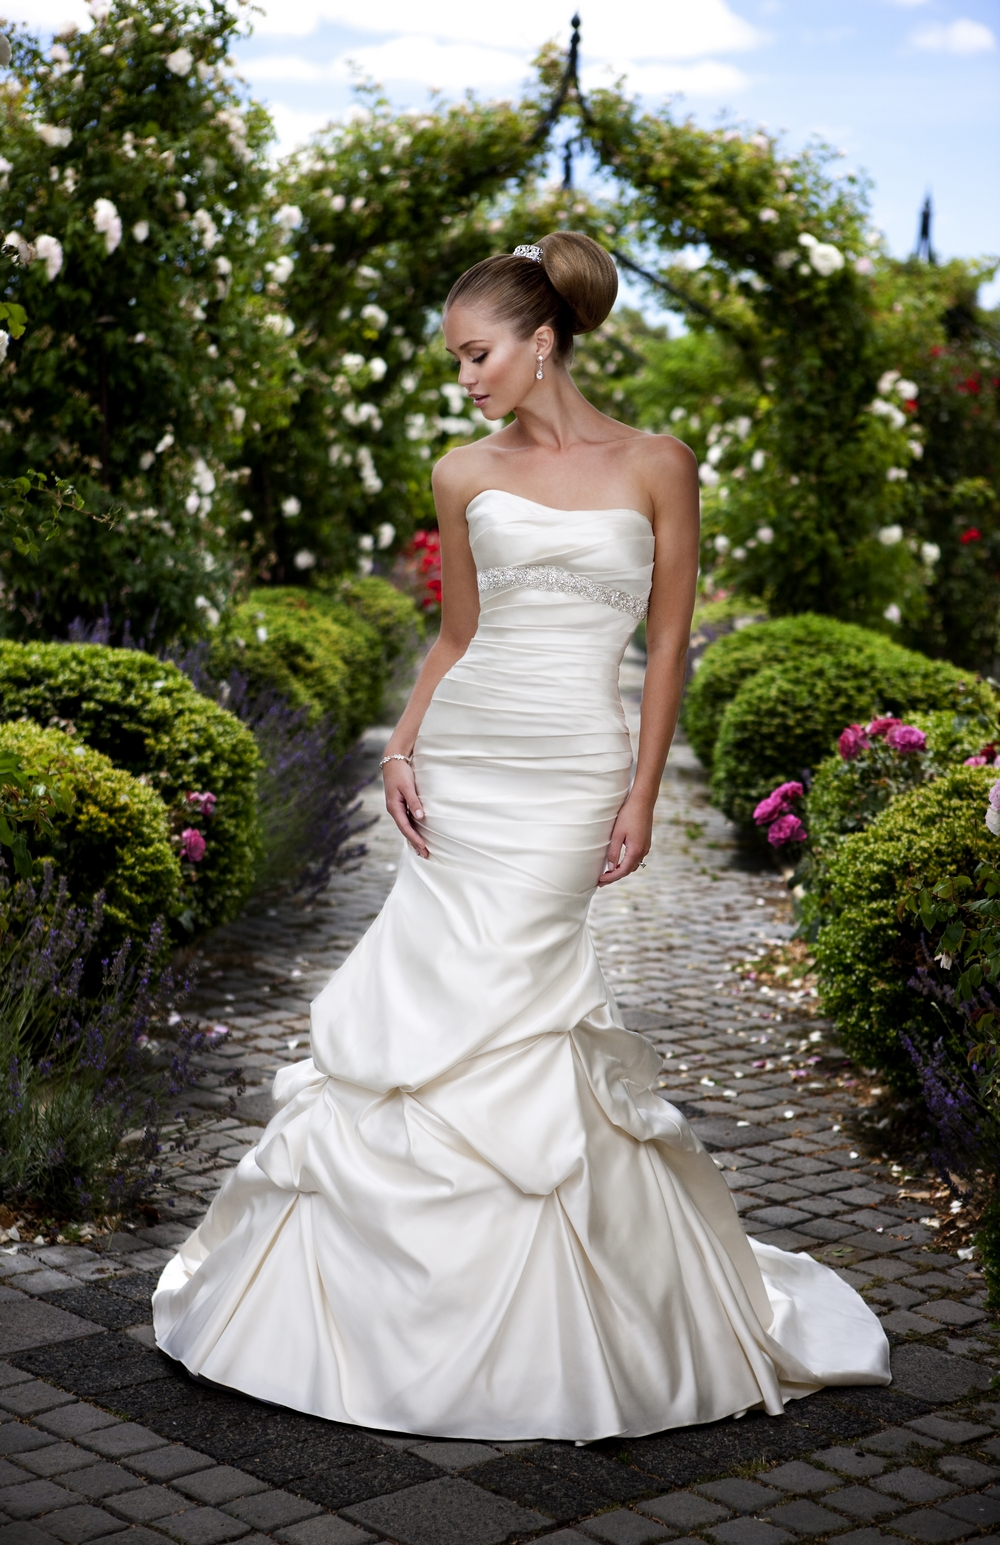 Essense-of-australia-wedding-dresses-2010-2011-d1129-front.original